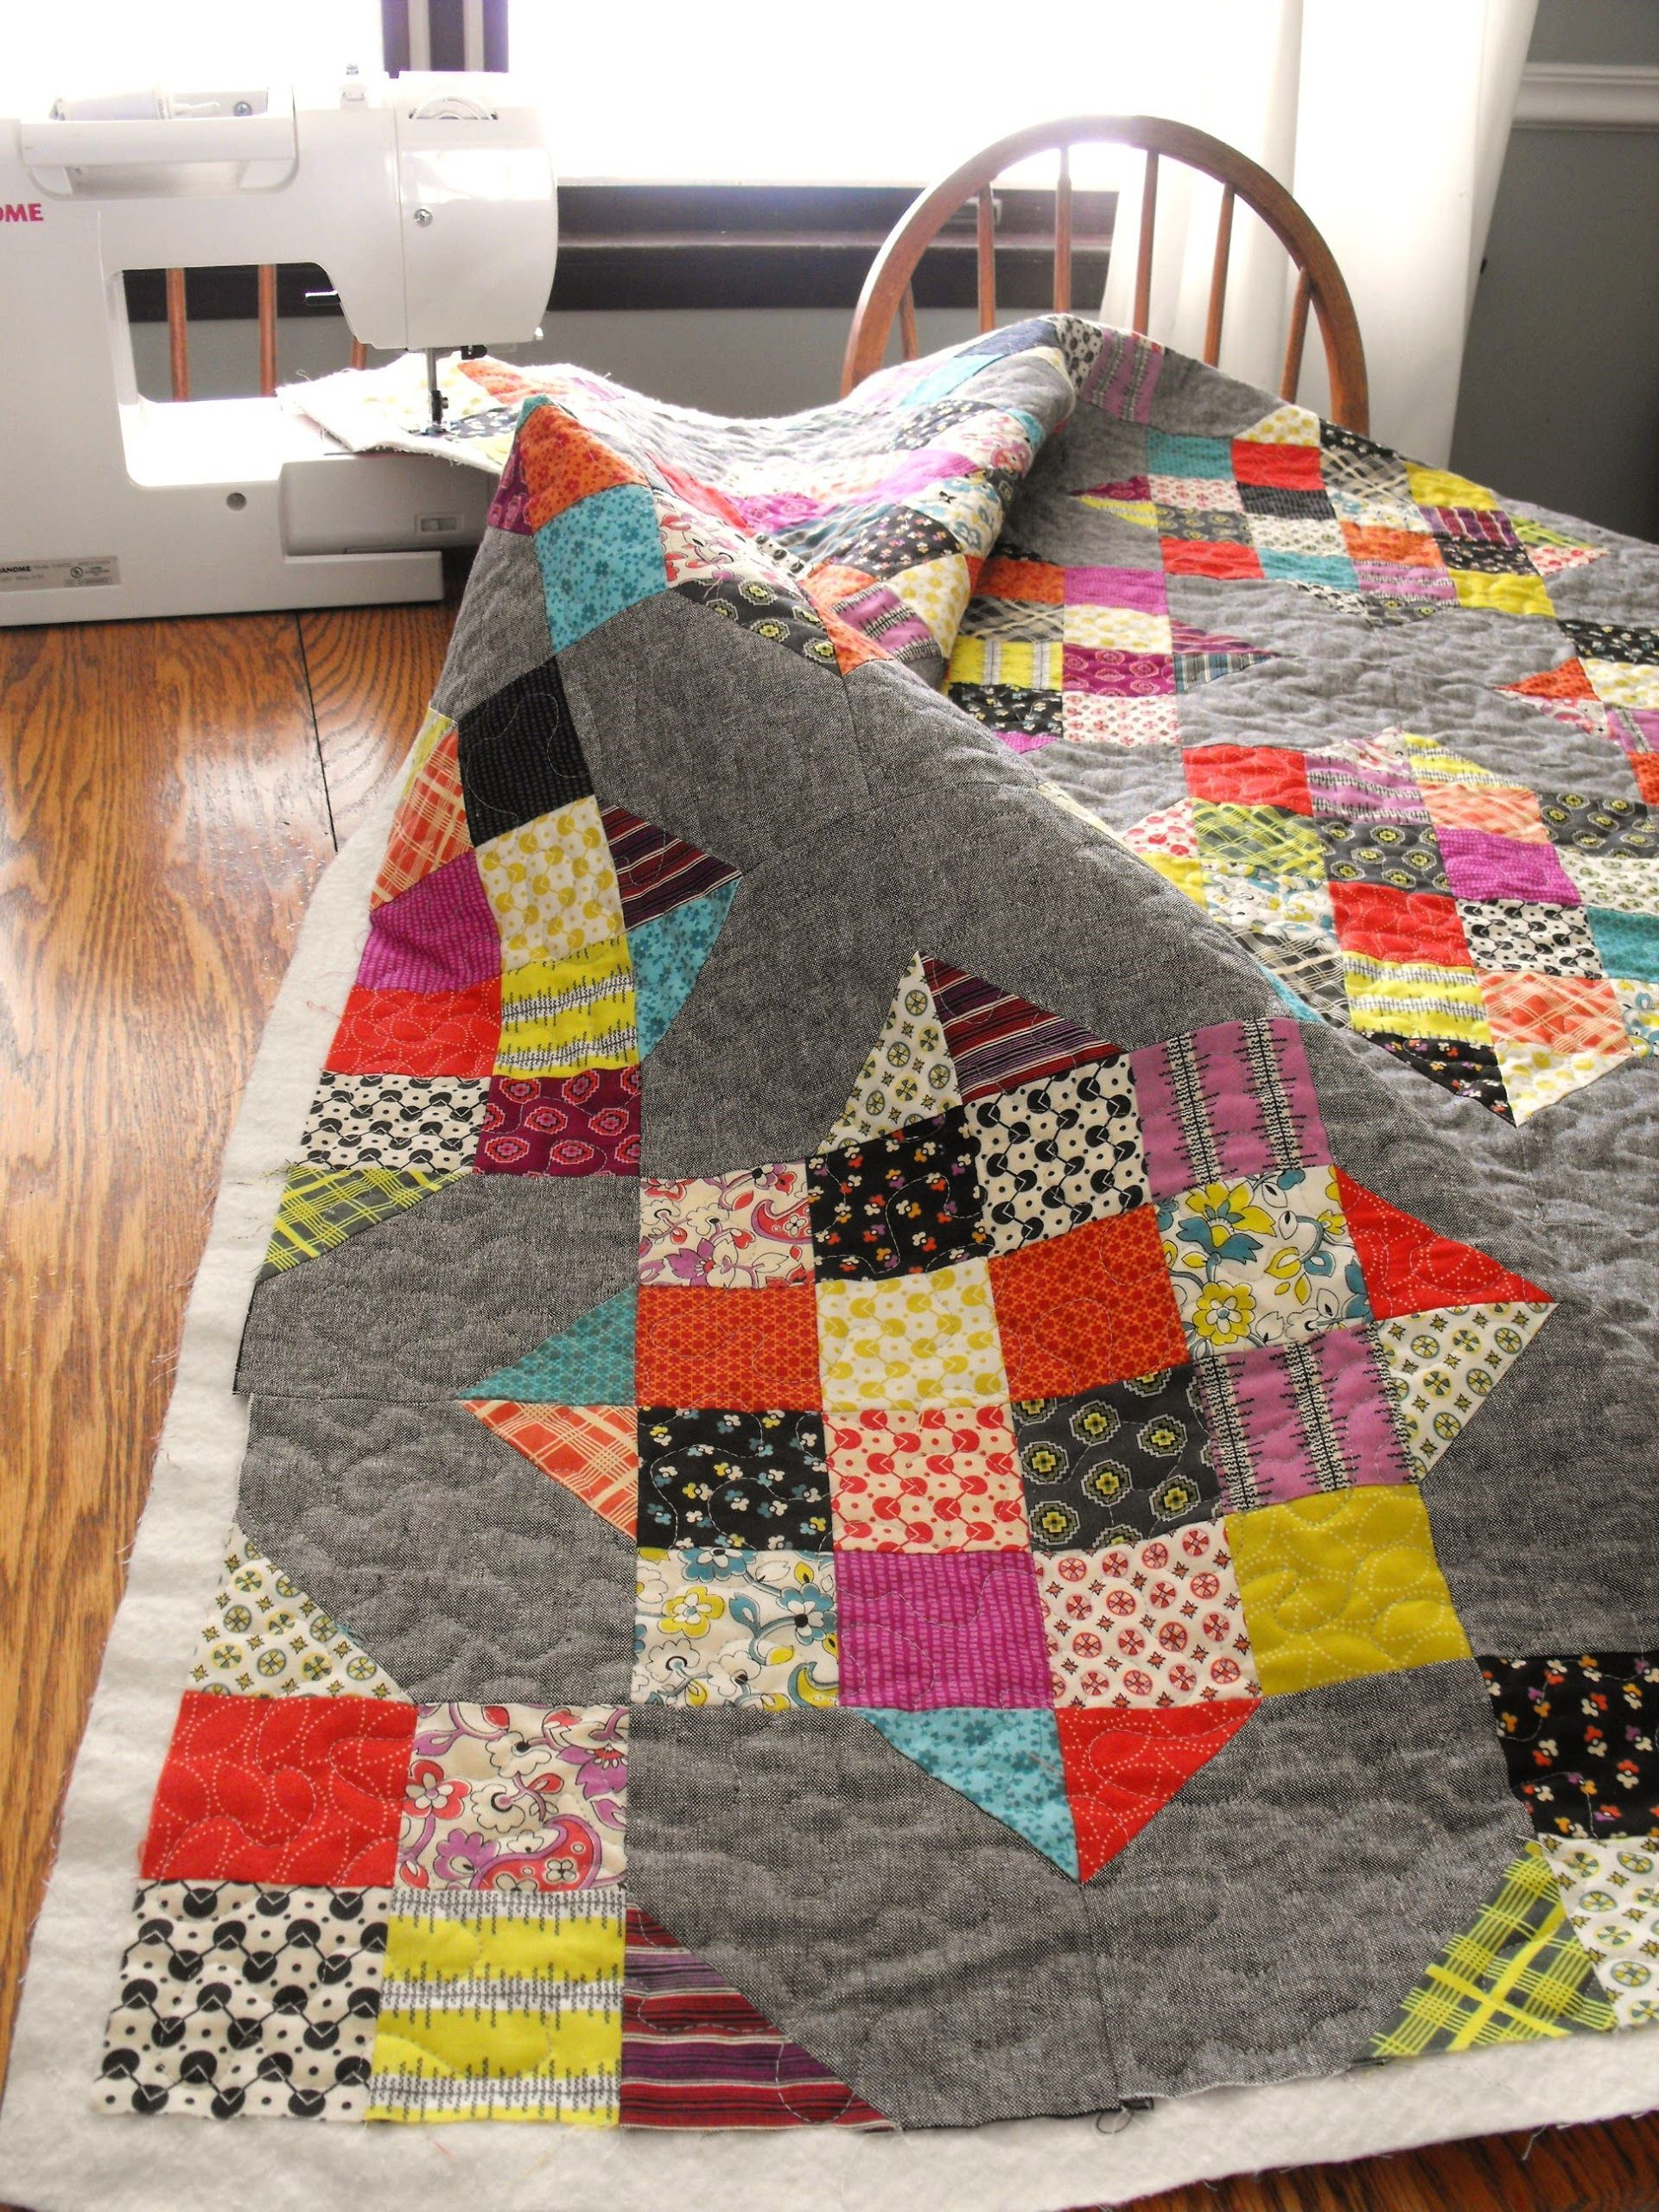 What to Quilt on Your Quilt: Choosing a Quilt Design | Quilt ...